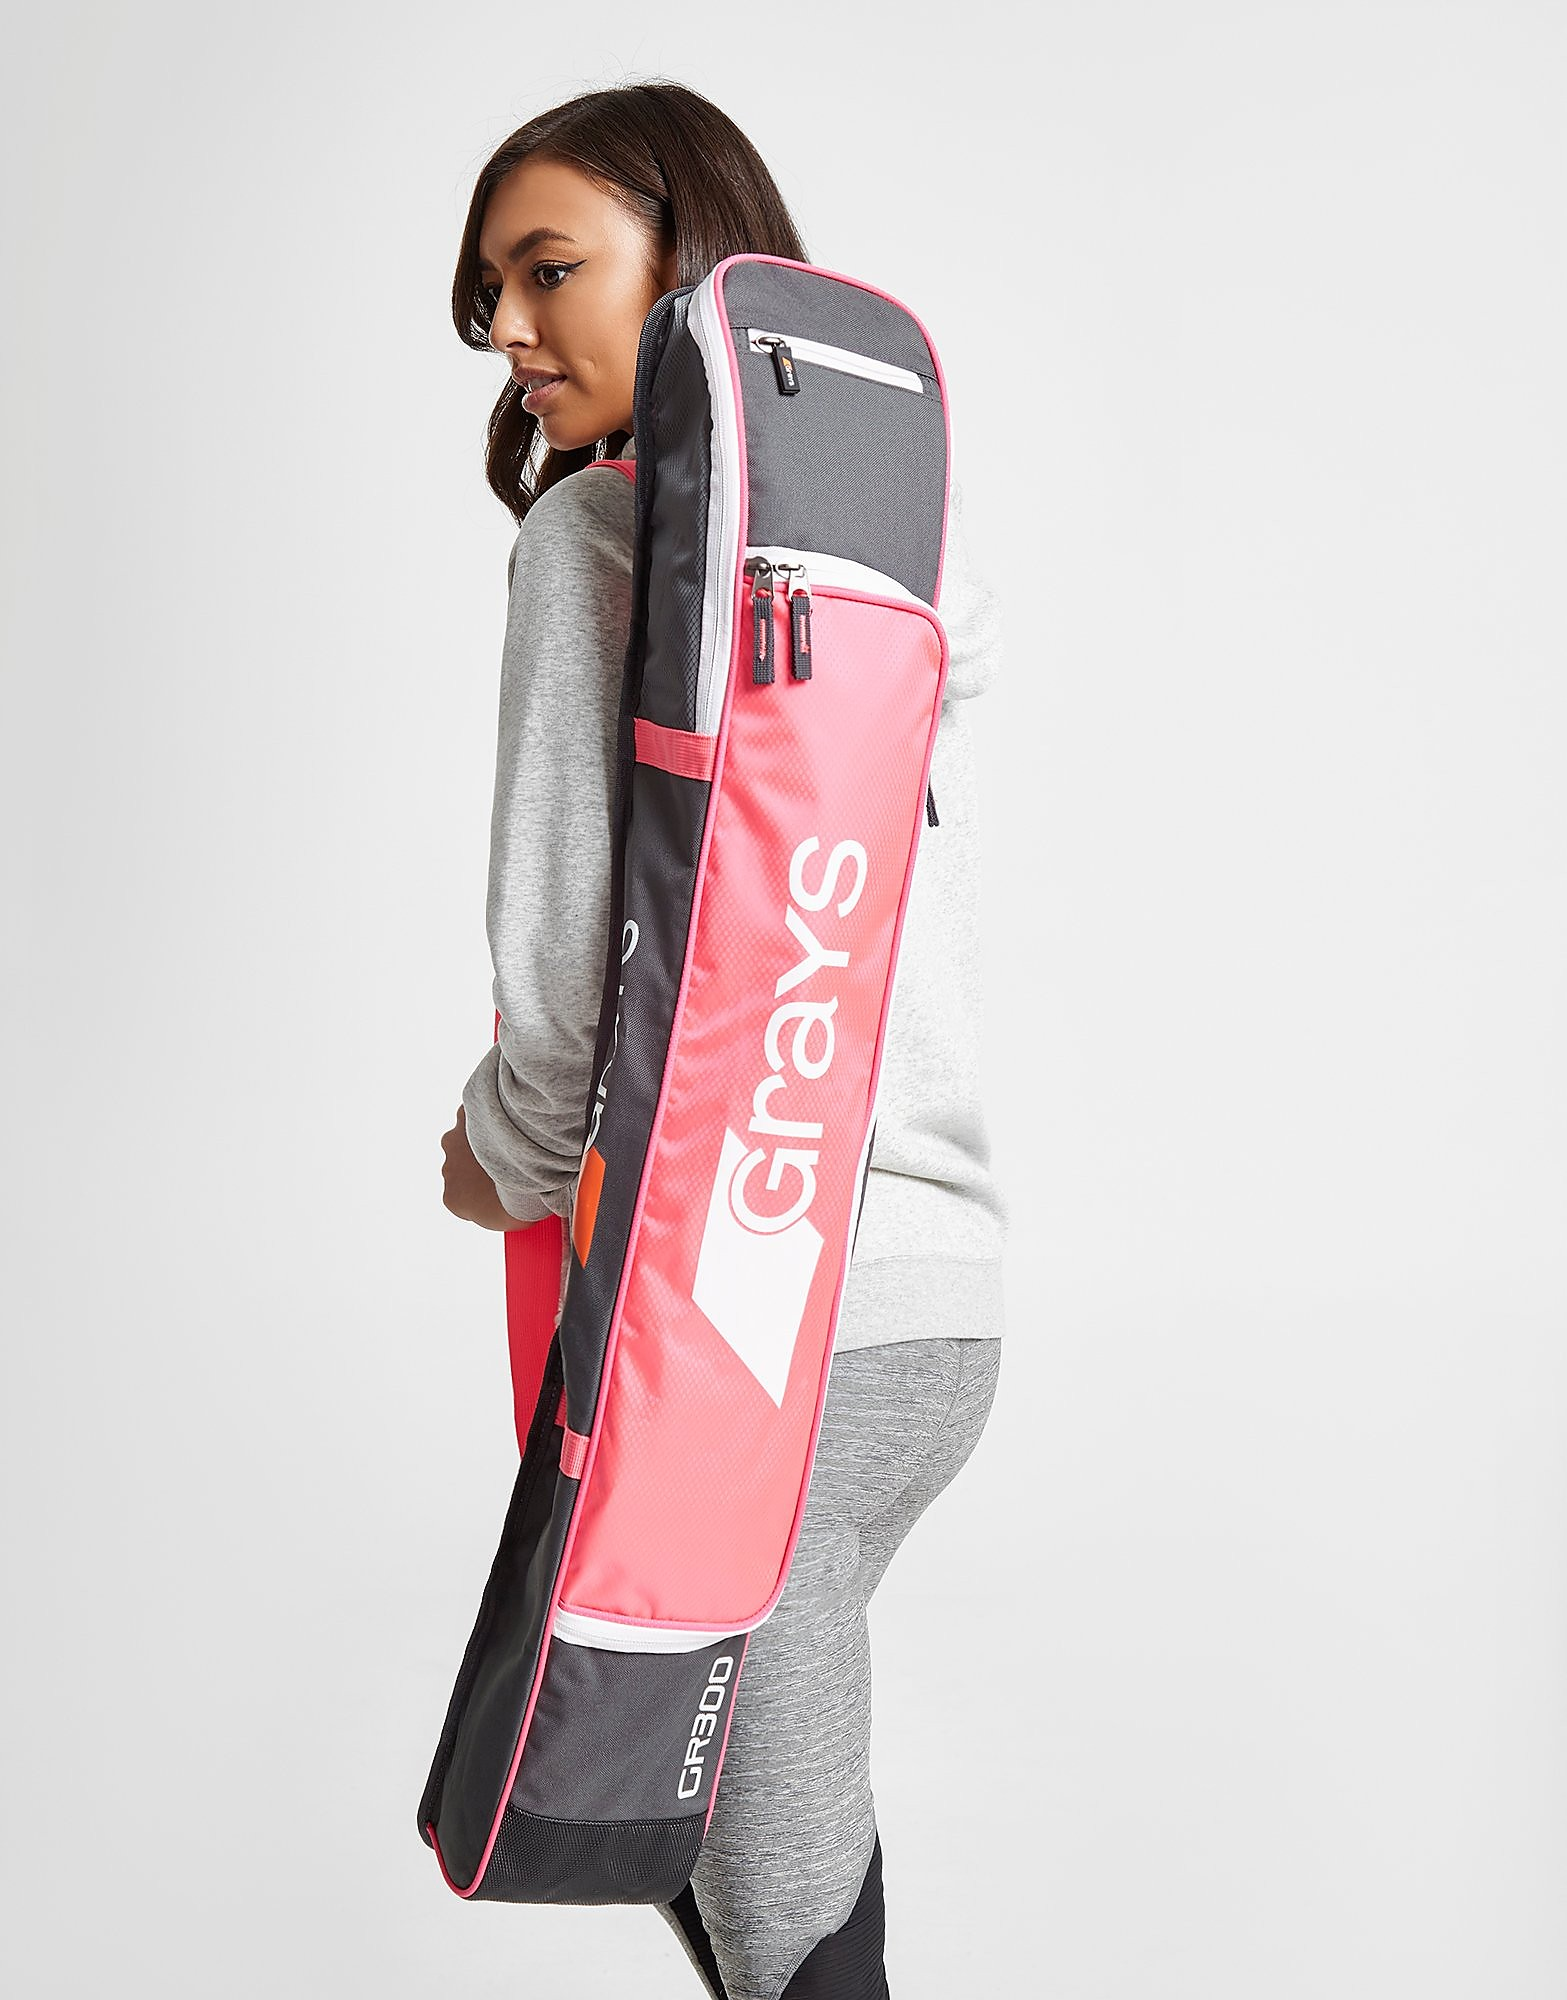 Grays GR300 Hockey Stick Bag